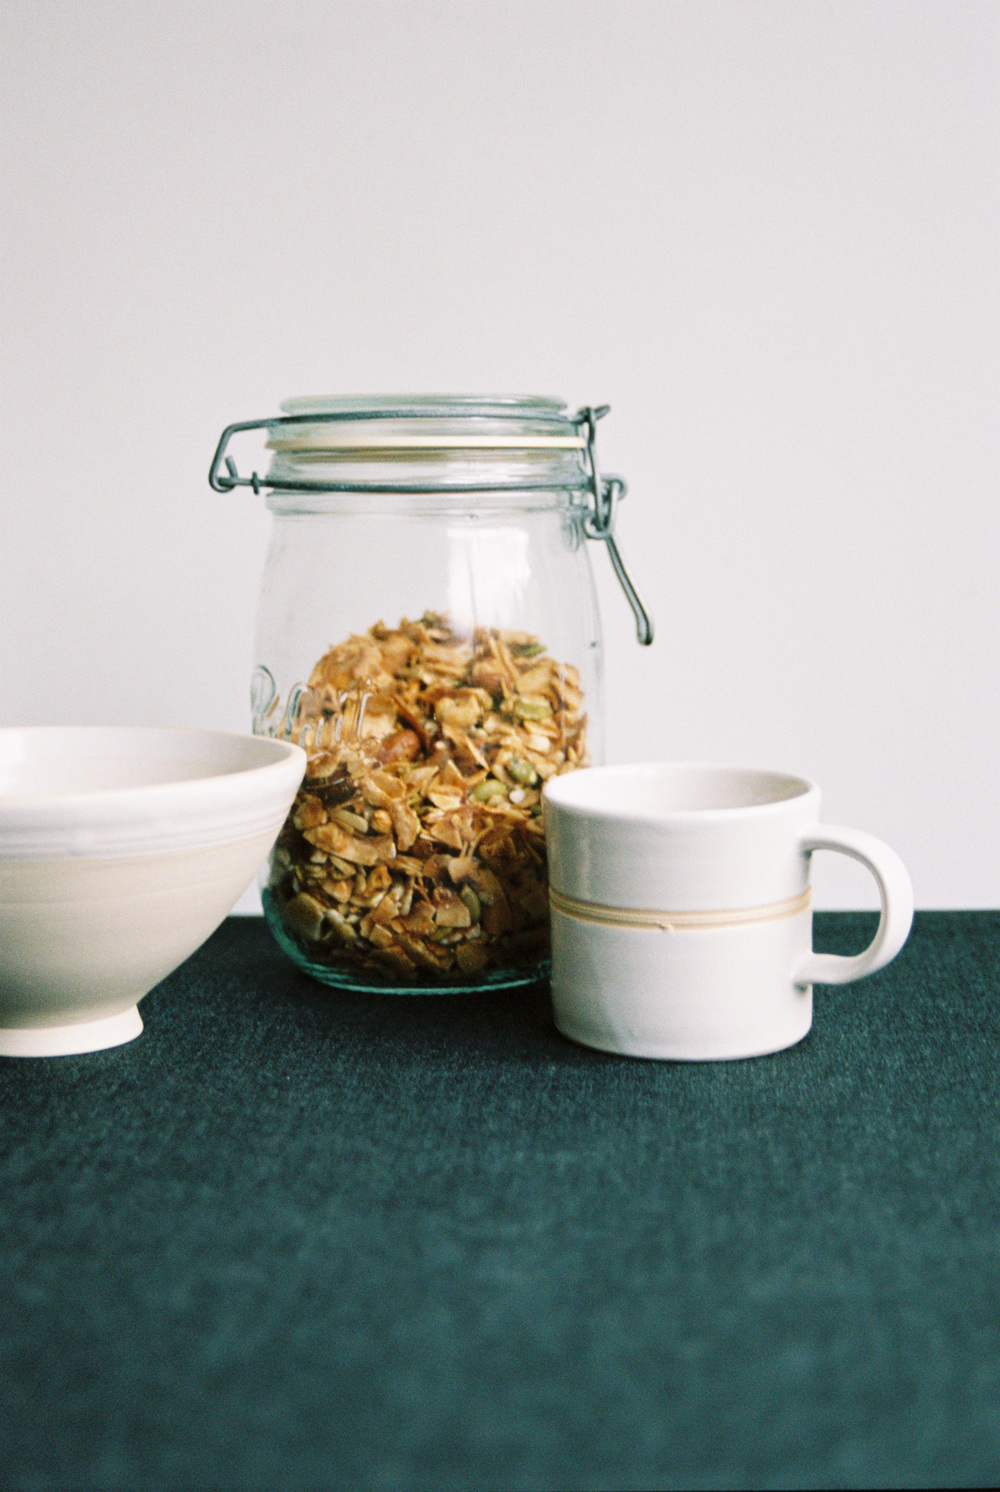 Handmade cereal bowl and coffee mug by Jane Sarre Ceramics.jpg